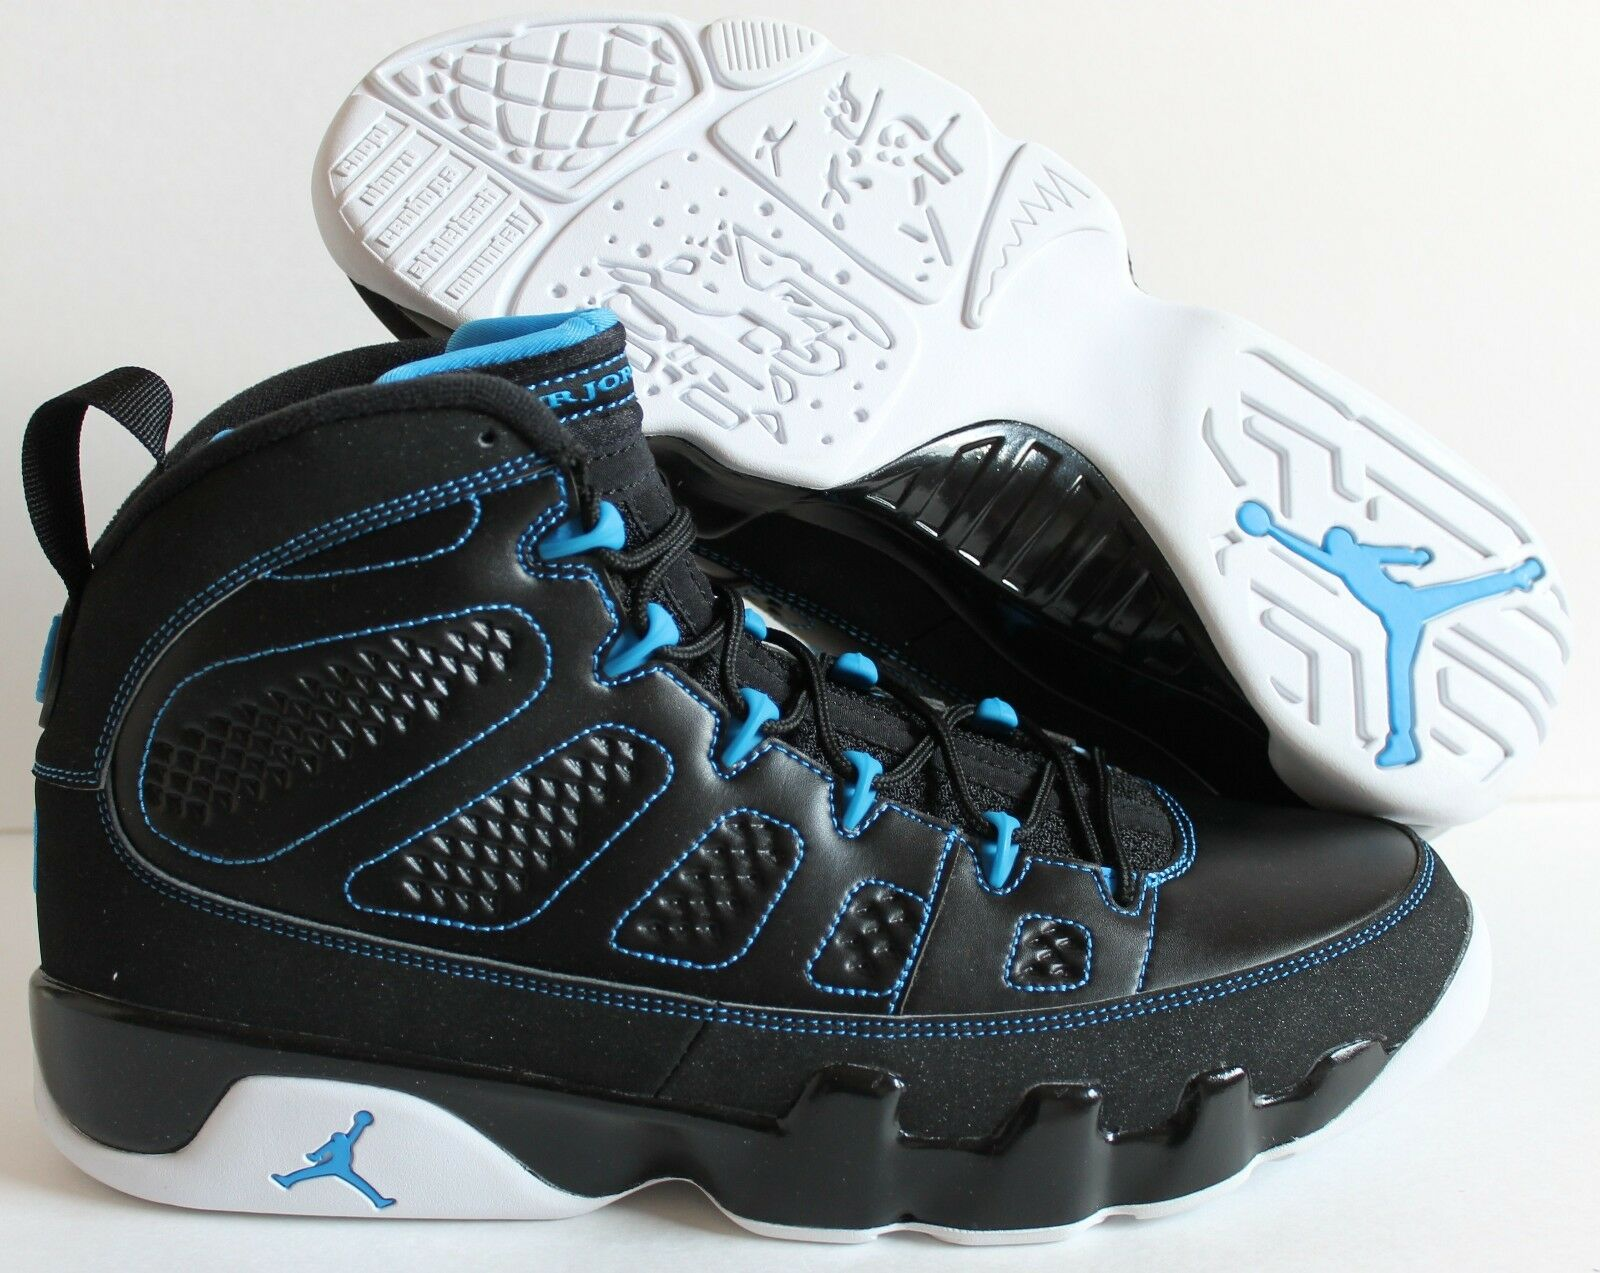 outlet store 8c561 2183e NIKE AIR JORDAN 9 RETRO Noir -blanc -PHOTO Bleu SZ 13